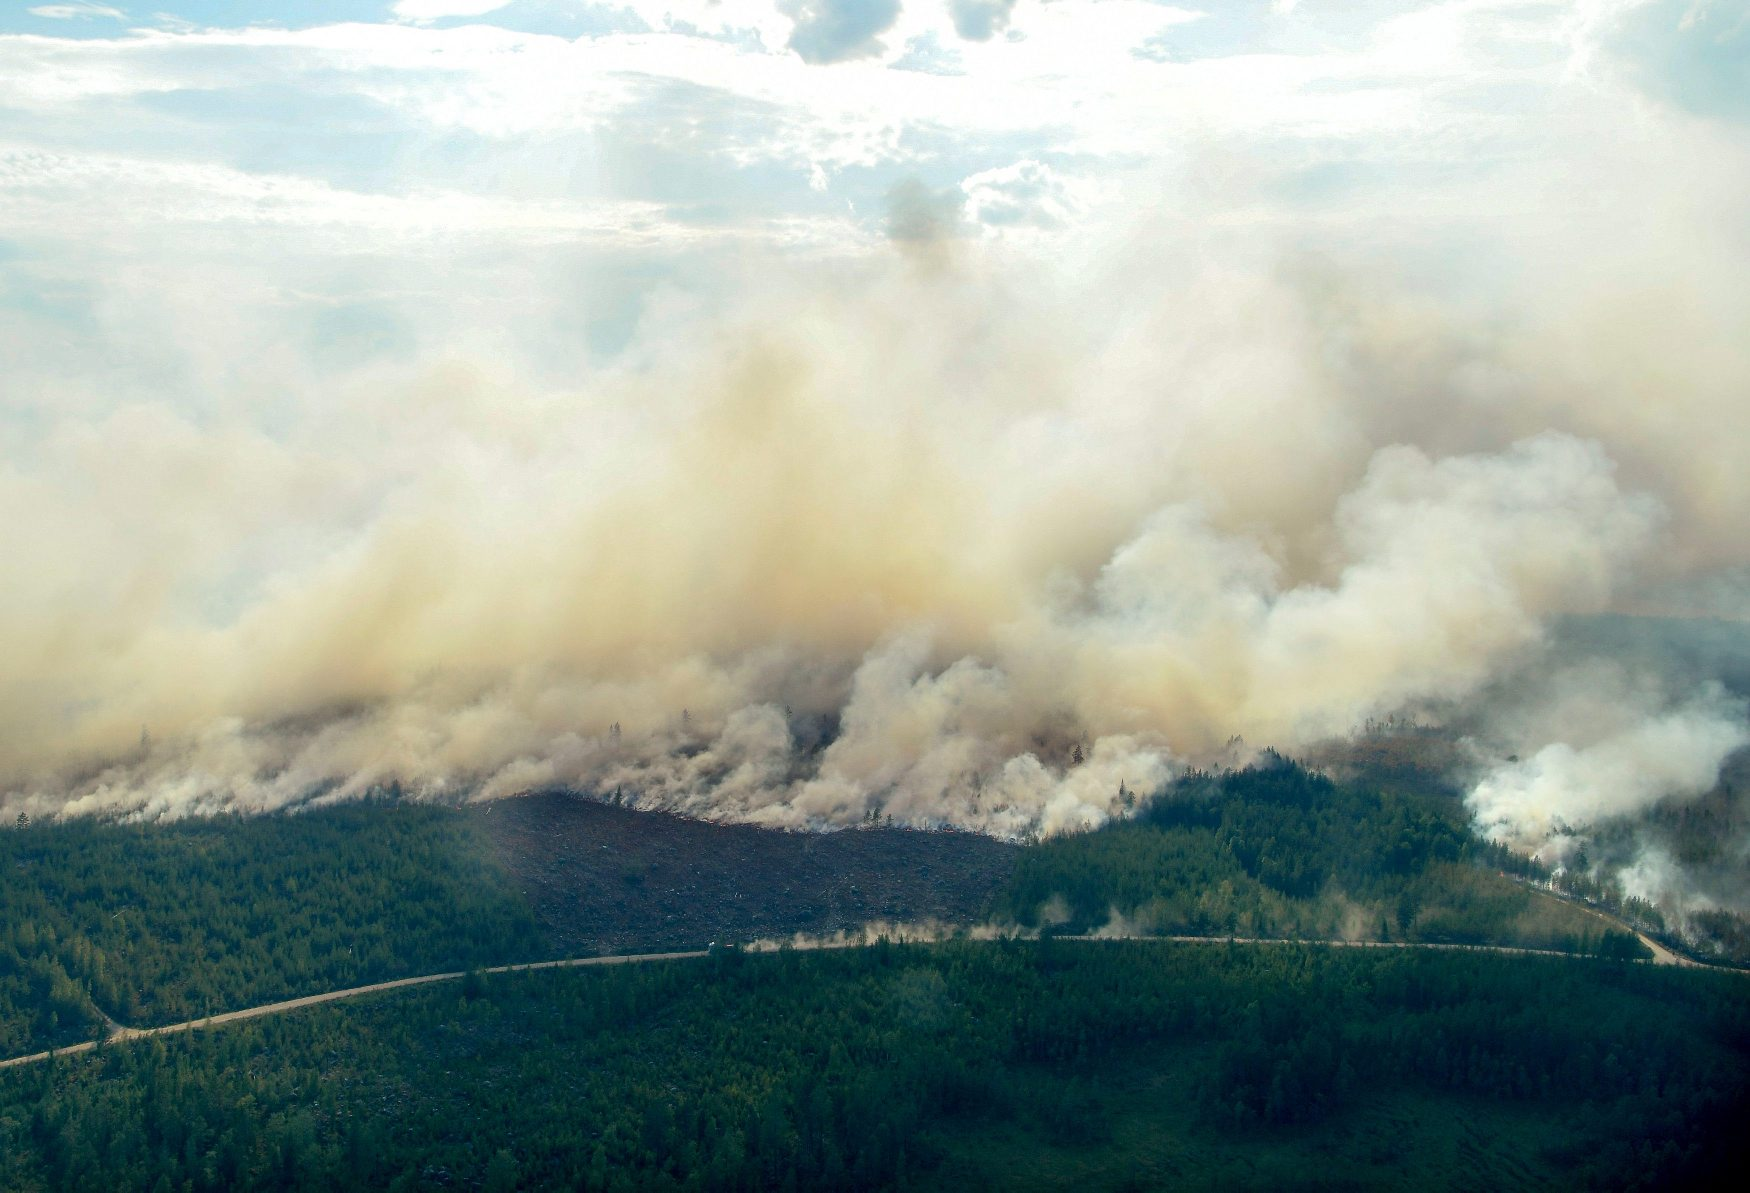 An aerial view of the wildfire outside Ljusdal, Sweden,  July 18, 2018. TT News Agency/Maja Suslin via REUTERS  ATTENTION EDITORS - THIS IMAGE WAS PROVIDED BY A THIRD PARTY. SWEDEN OUT. NO COMMERCIAL OR EDITORIAL SALES IN SWEDEN.